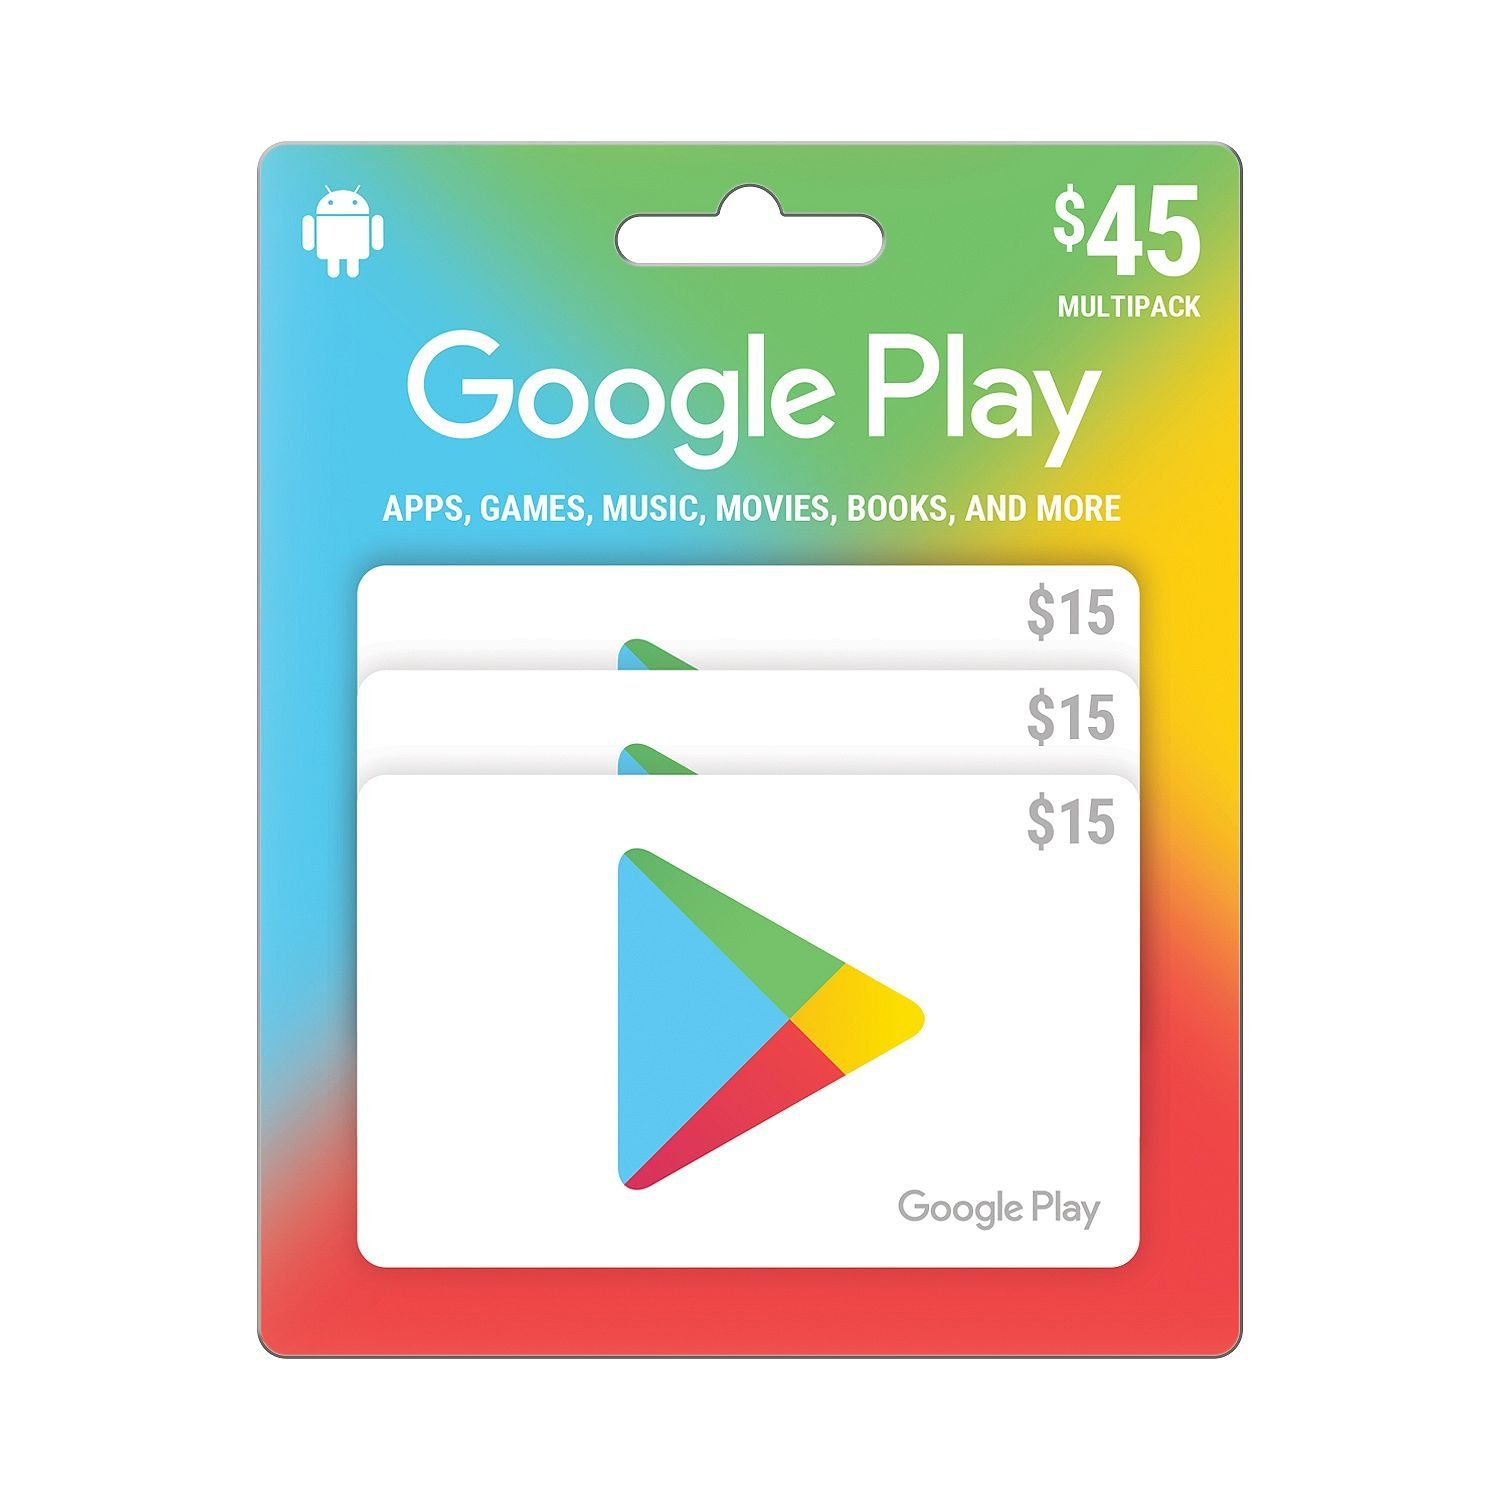 Google Play Giveaway 2019 Google Play Giveaway 2018 Google Play